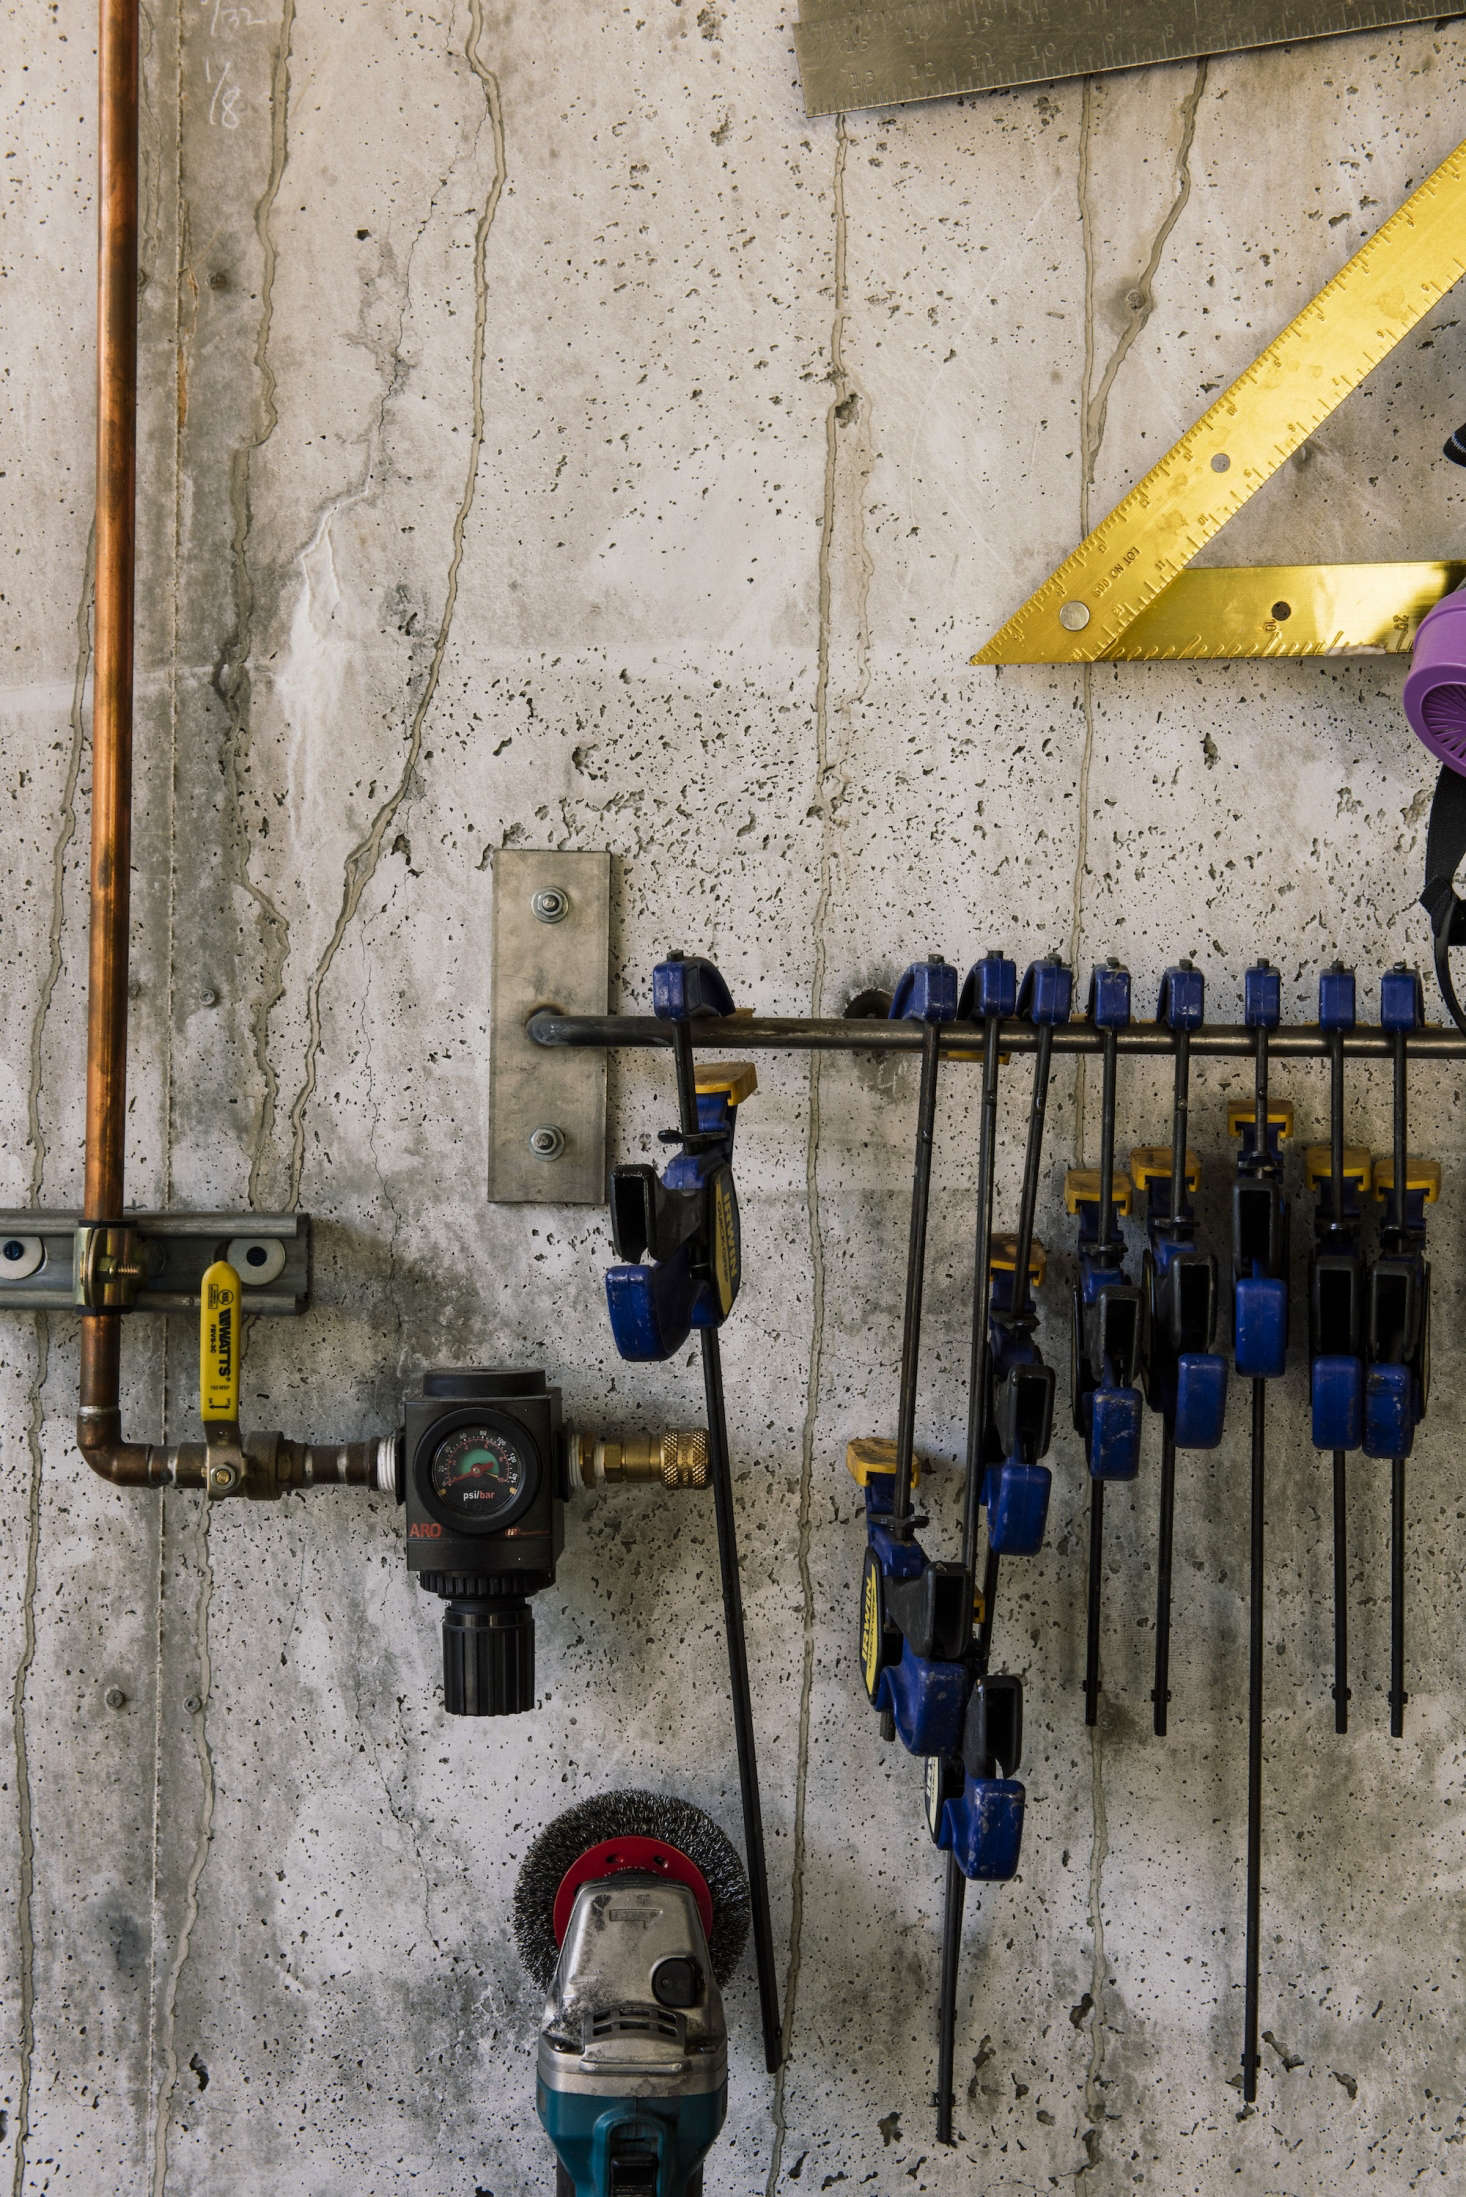 Steel hooks and bars keep shop tools like clamps and rulers in place. Exposed copper tubing is beautiful and necessary:It carries pressurized air for cleaning shop surfaces and materials.